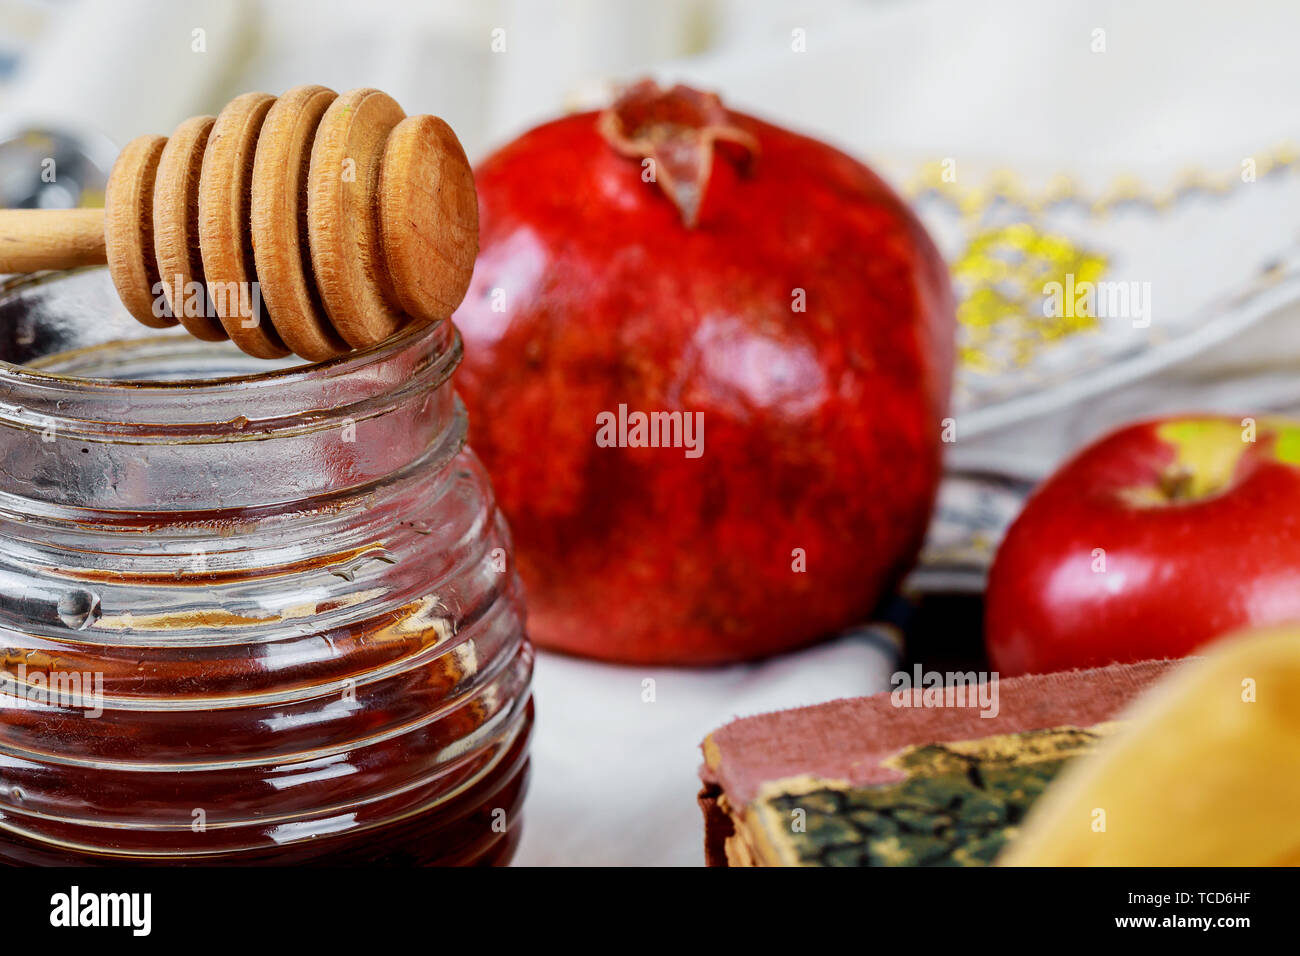 Honey, apple and pomegranate for traditional holiday symbols rosh hashanah jewesh holiday on wooden white background. - Stock Image